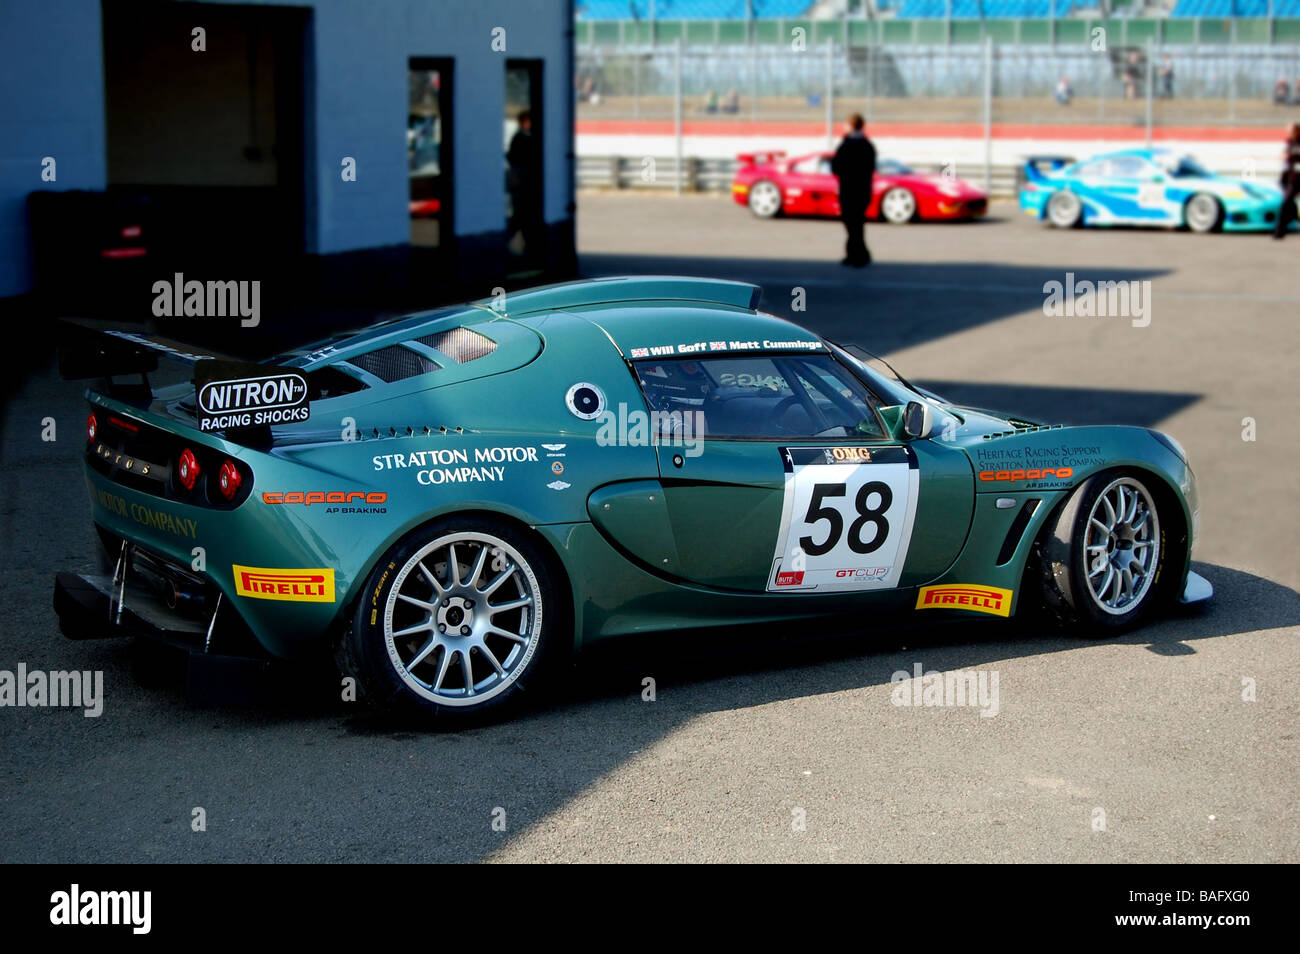 Lotus Exige Racecar at Donington park Elise Trophy Stock Photo ...